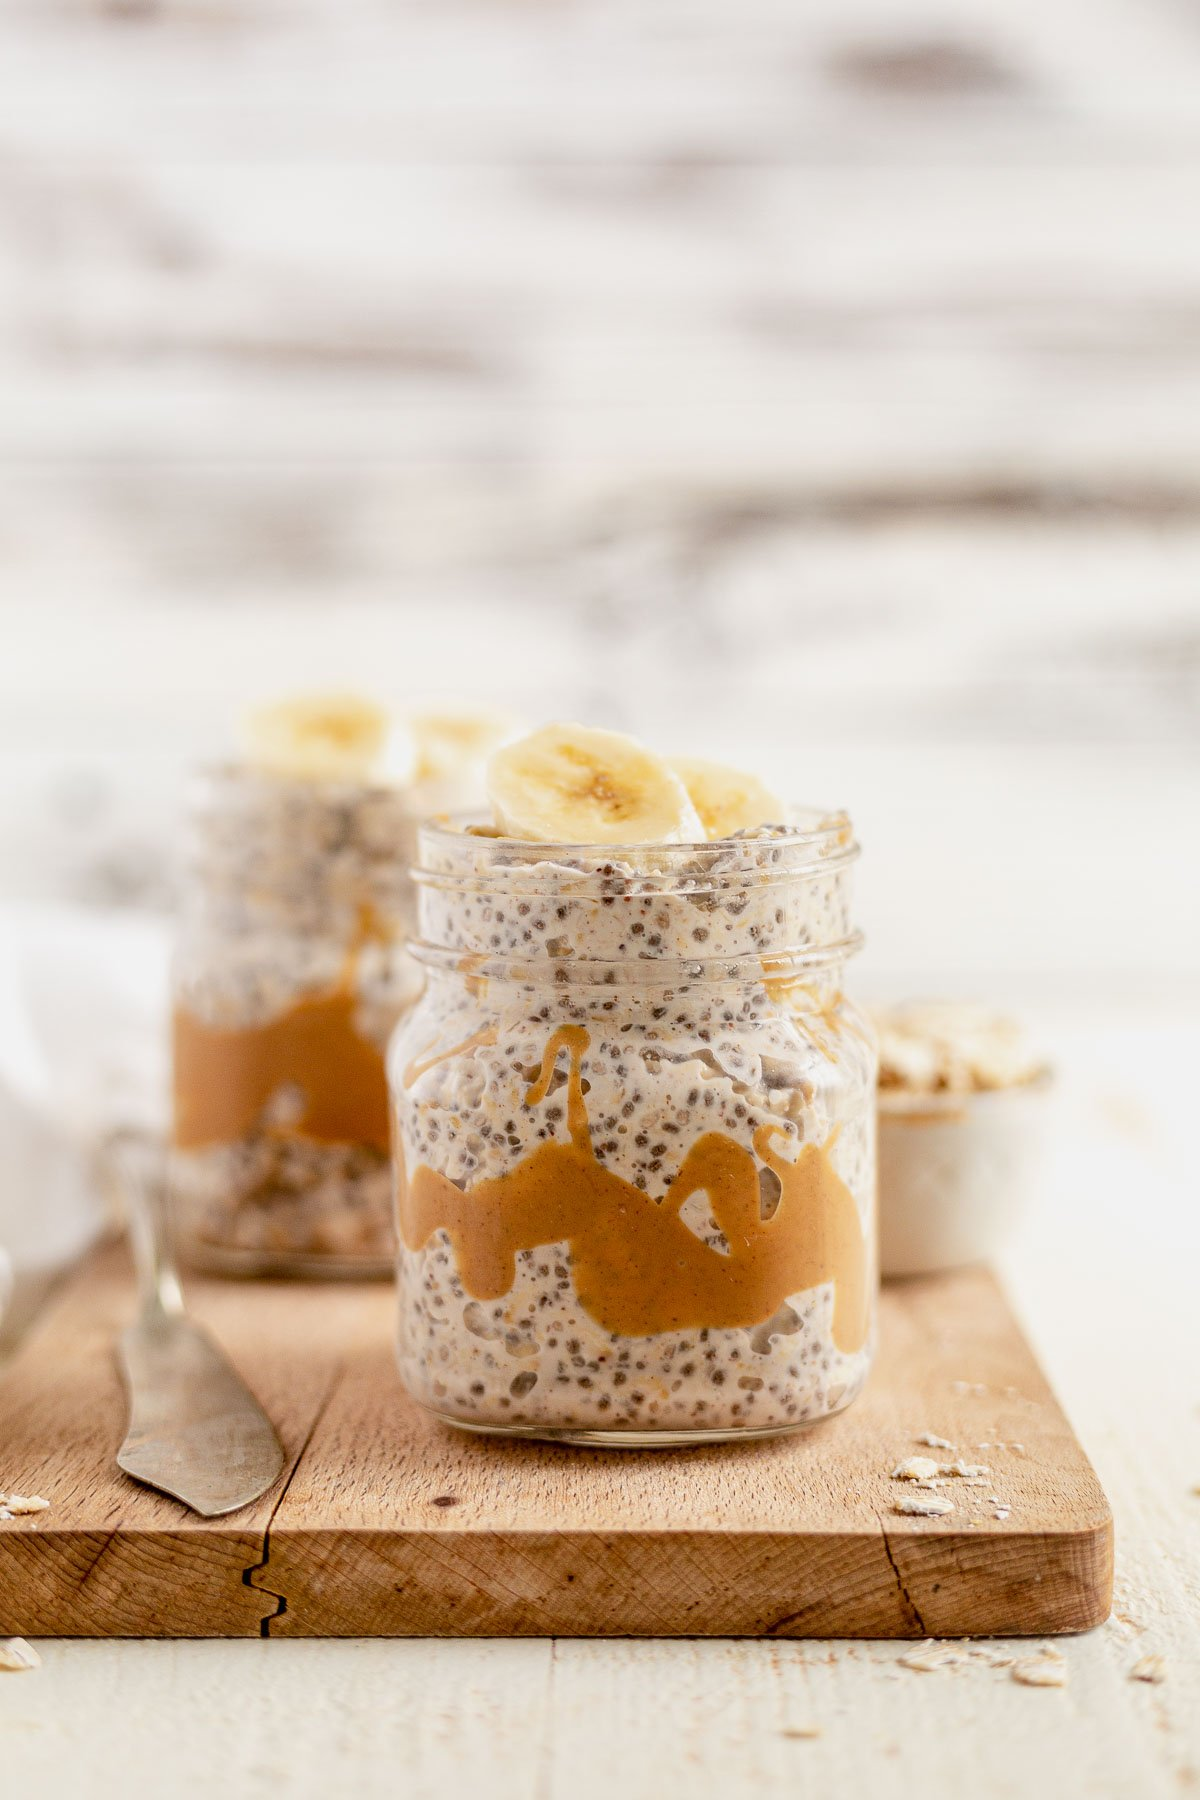 peanut butter overnight oats in a jar topped with bananas